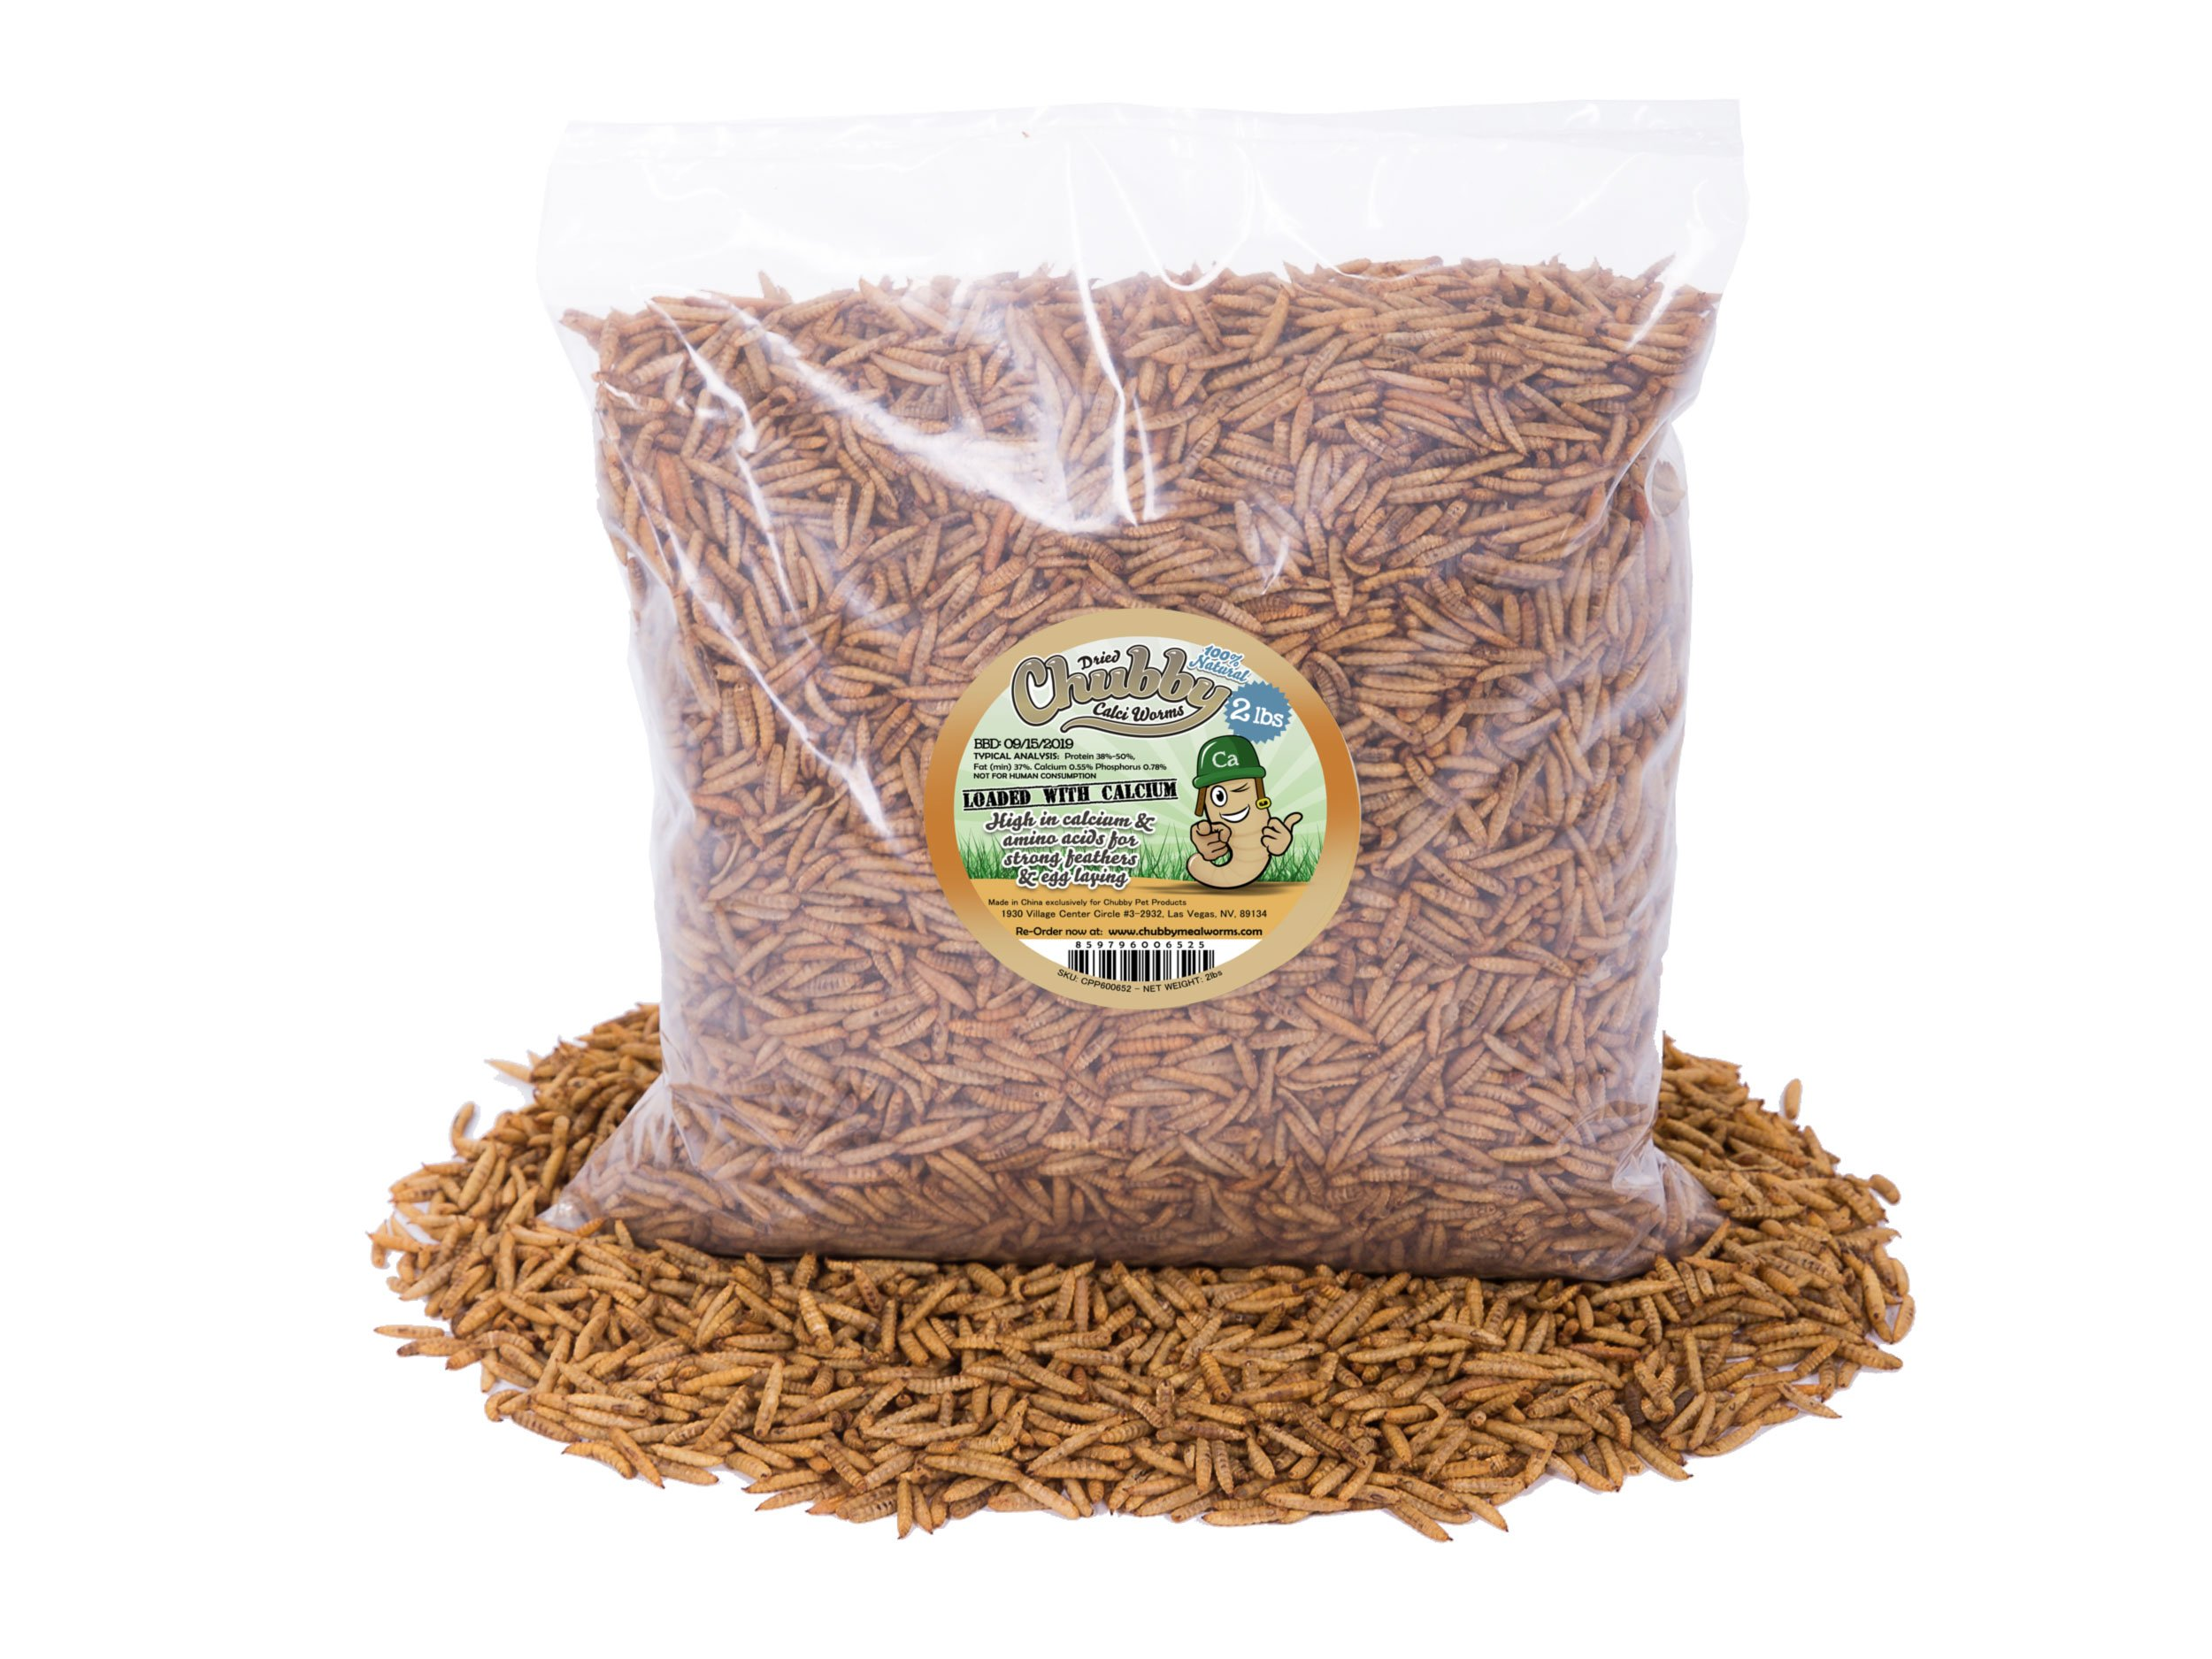 Buy Live Waxworms For Feeding Reptiles Birds Chickens And Fishing In Cheap Price On Alibaba Com